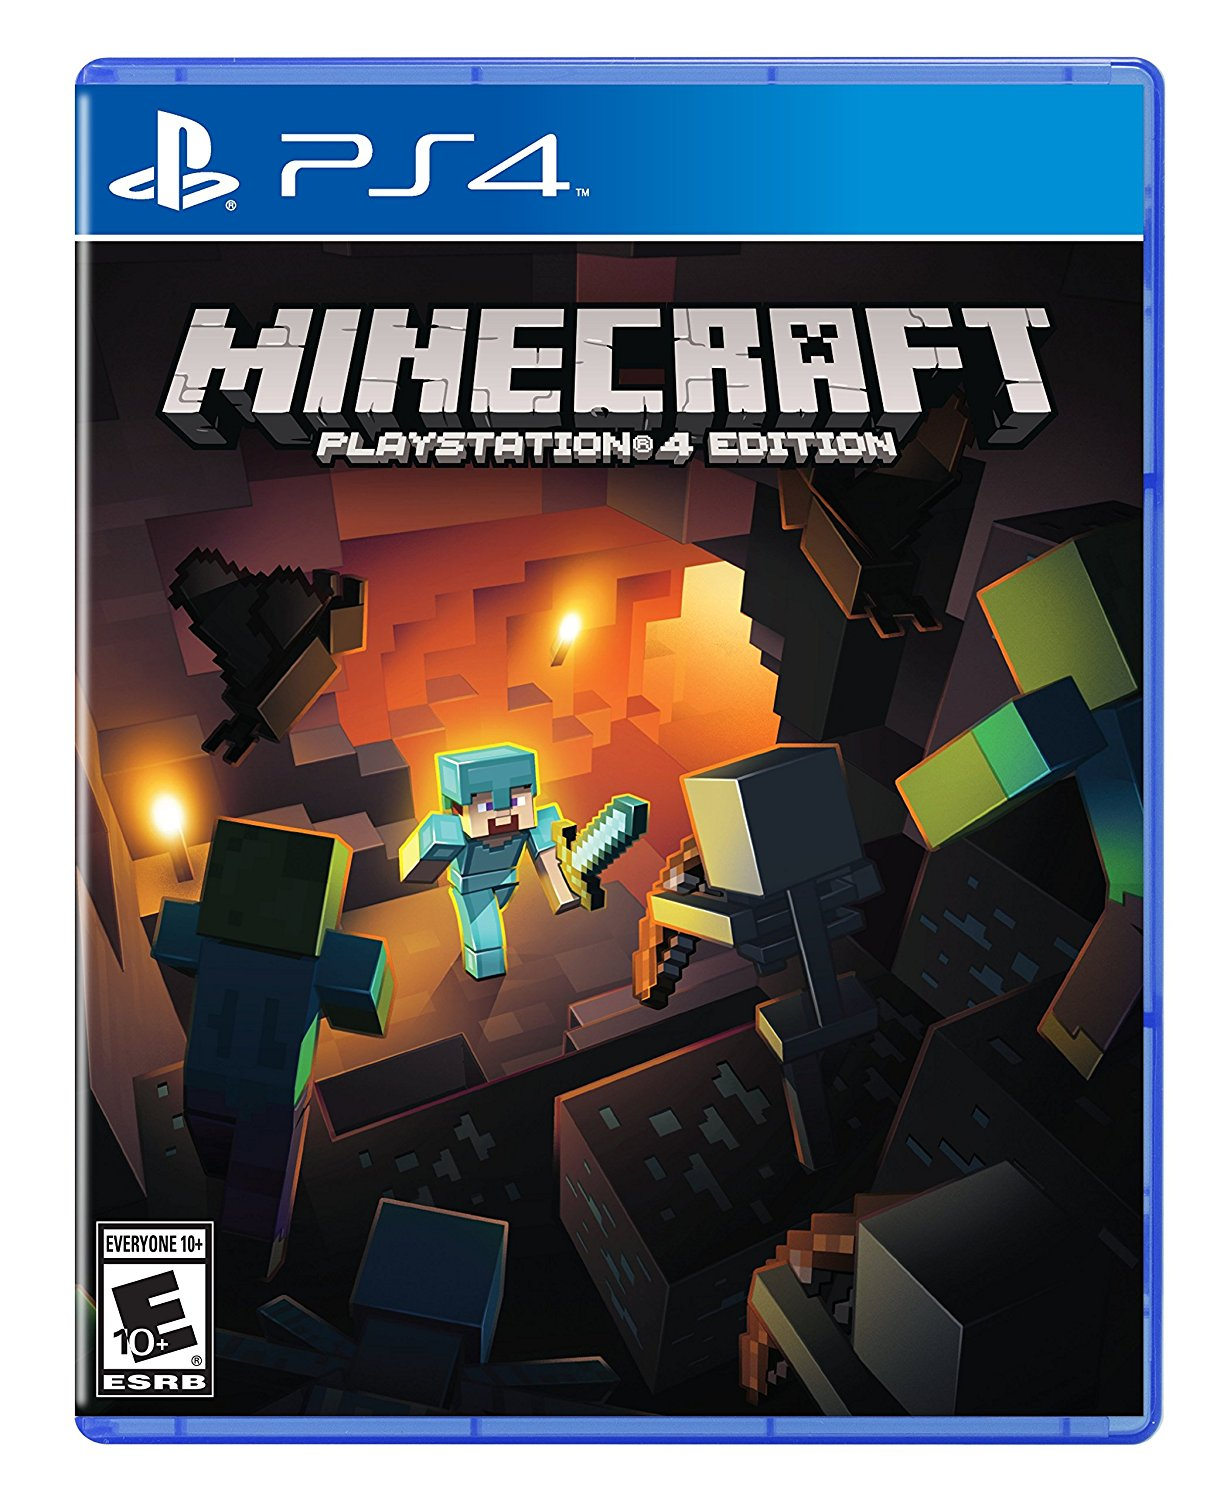 Sony Minecraft Playstation 4 Edition PS4 Playstation 4 Game